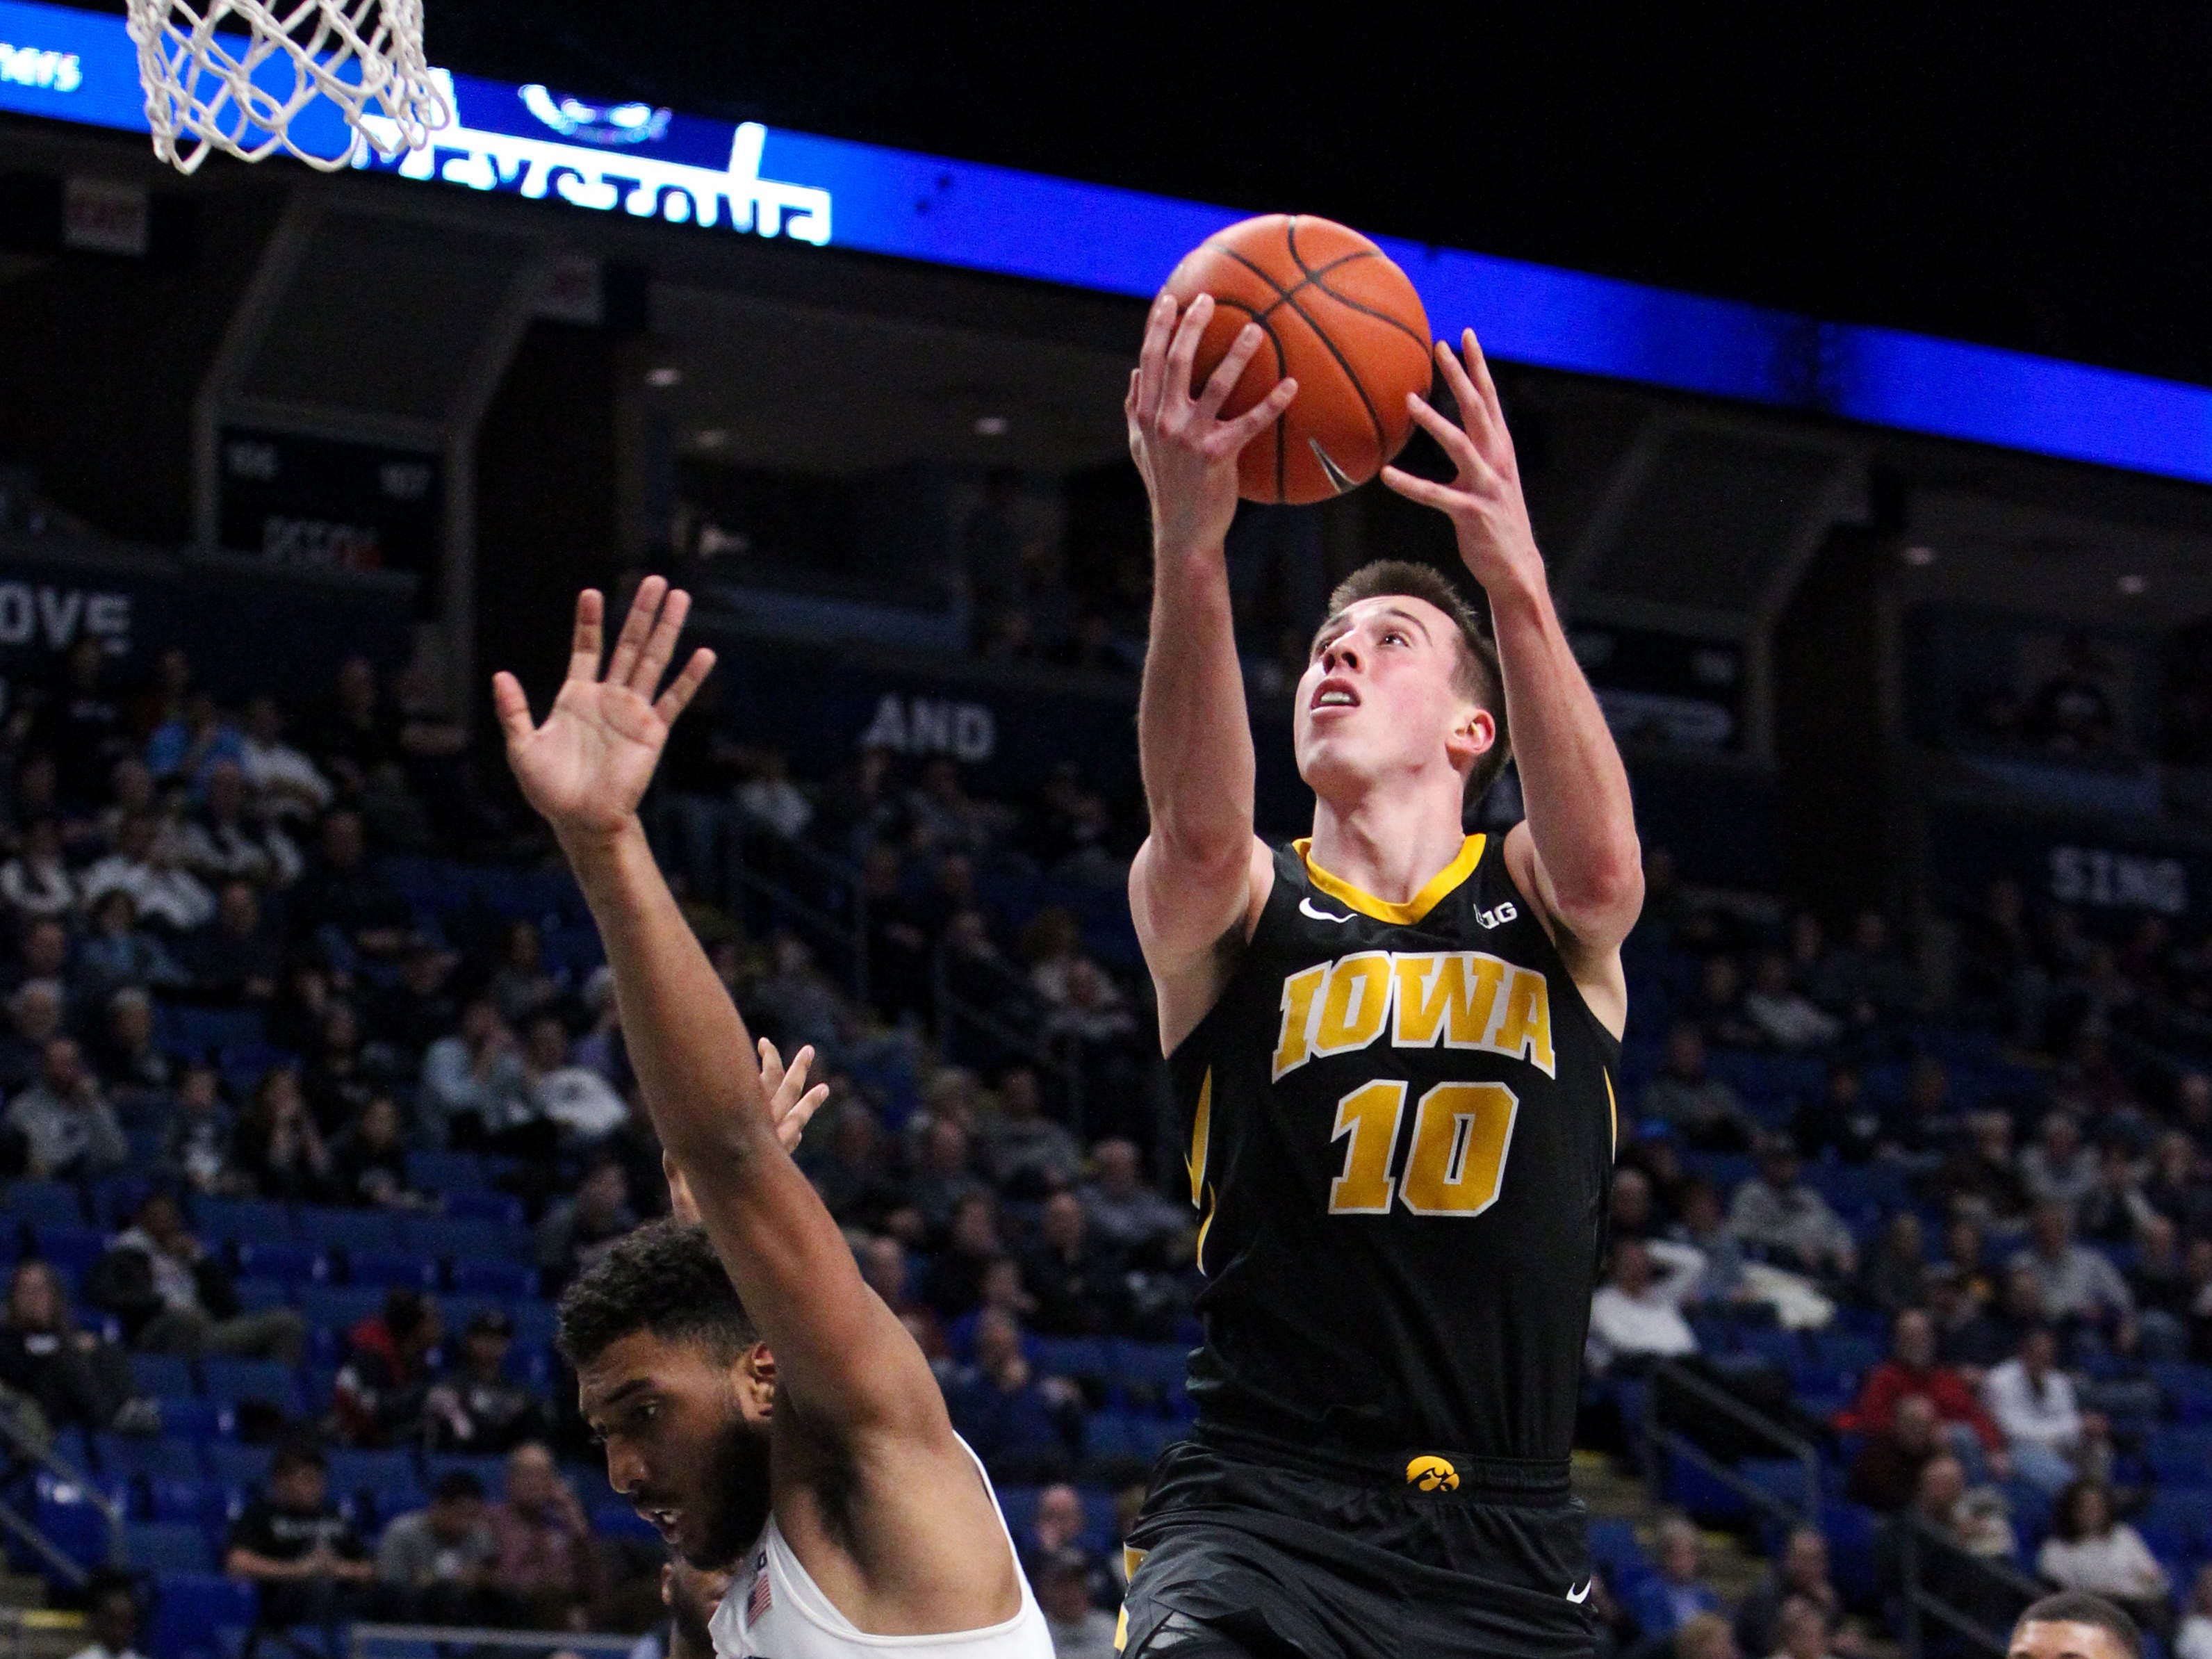 Jan 16, 2019; University Park, PA, USA; Iowa Hawkeyes guard Joe Wieskamp (10) drives to the basket as Penn State Nittany Lions guard Josh Reaves (23) defends during the second half at Bryce Jordan Center. Iowa defeated Penn State 89-82. Mandatory Credit: Matthew O'Haren-USA TODAY Sports